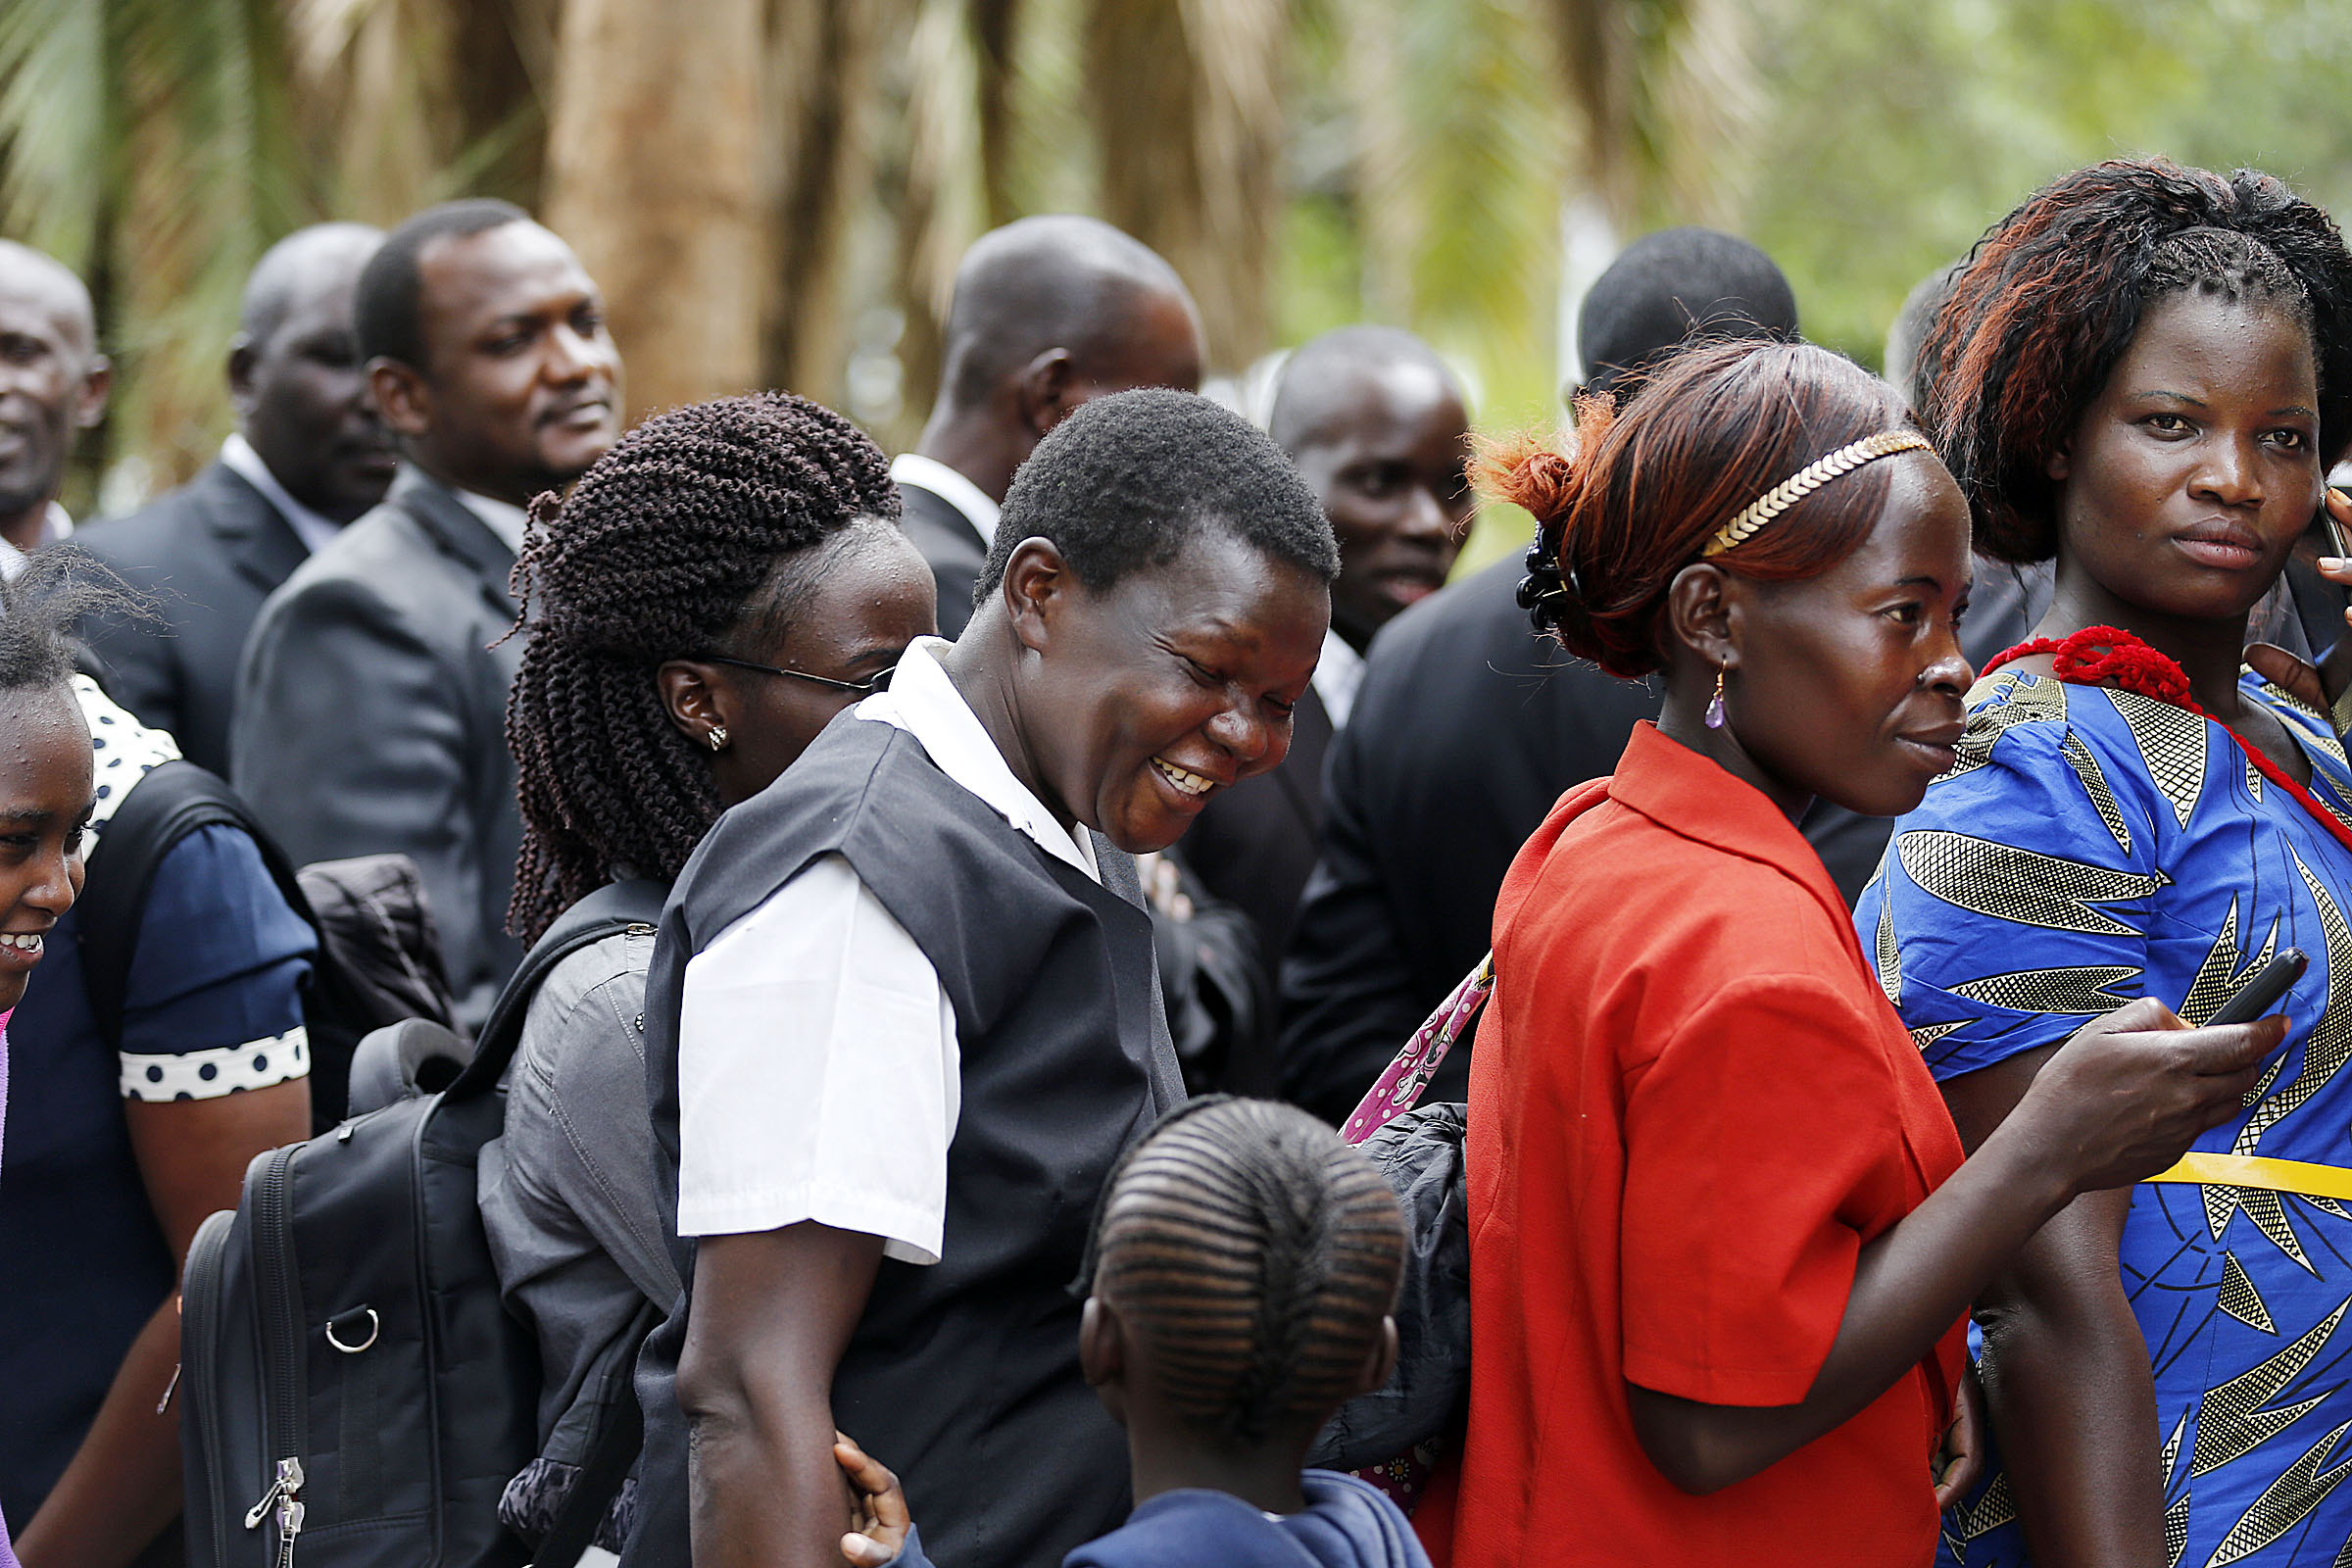 People line up to attend a special devotional with President Russell M. Nelson in Nairobi, Kenya, on Monday, April 16, 2018.